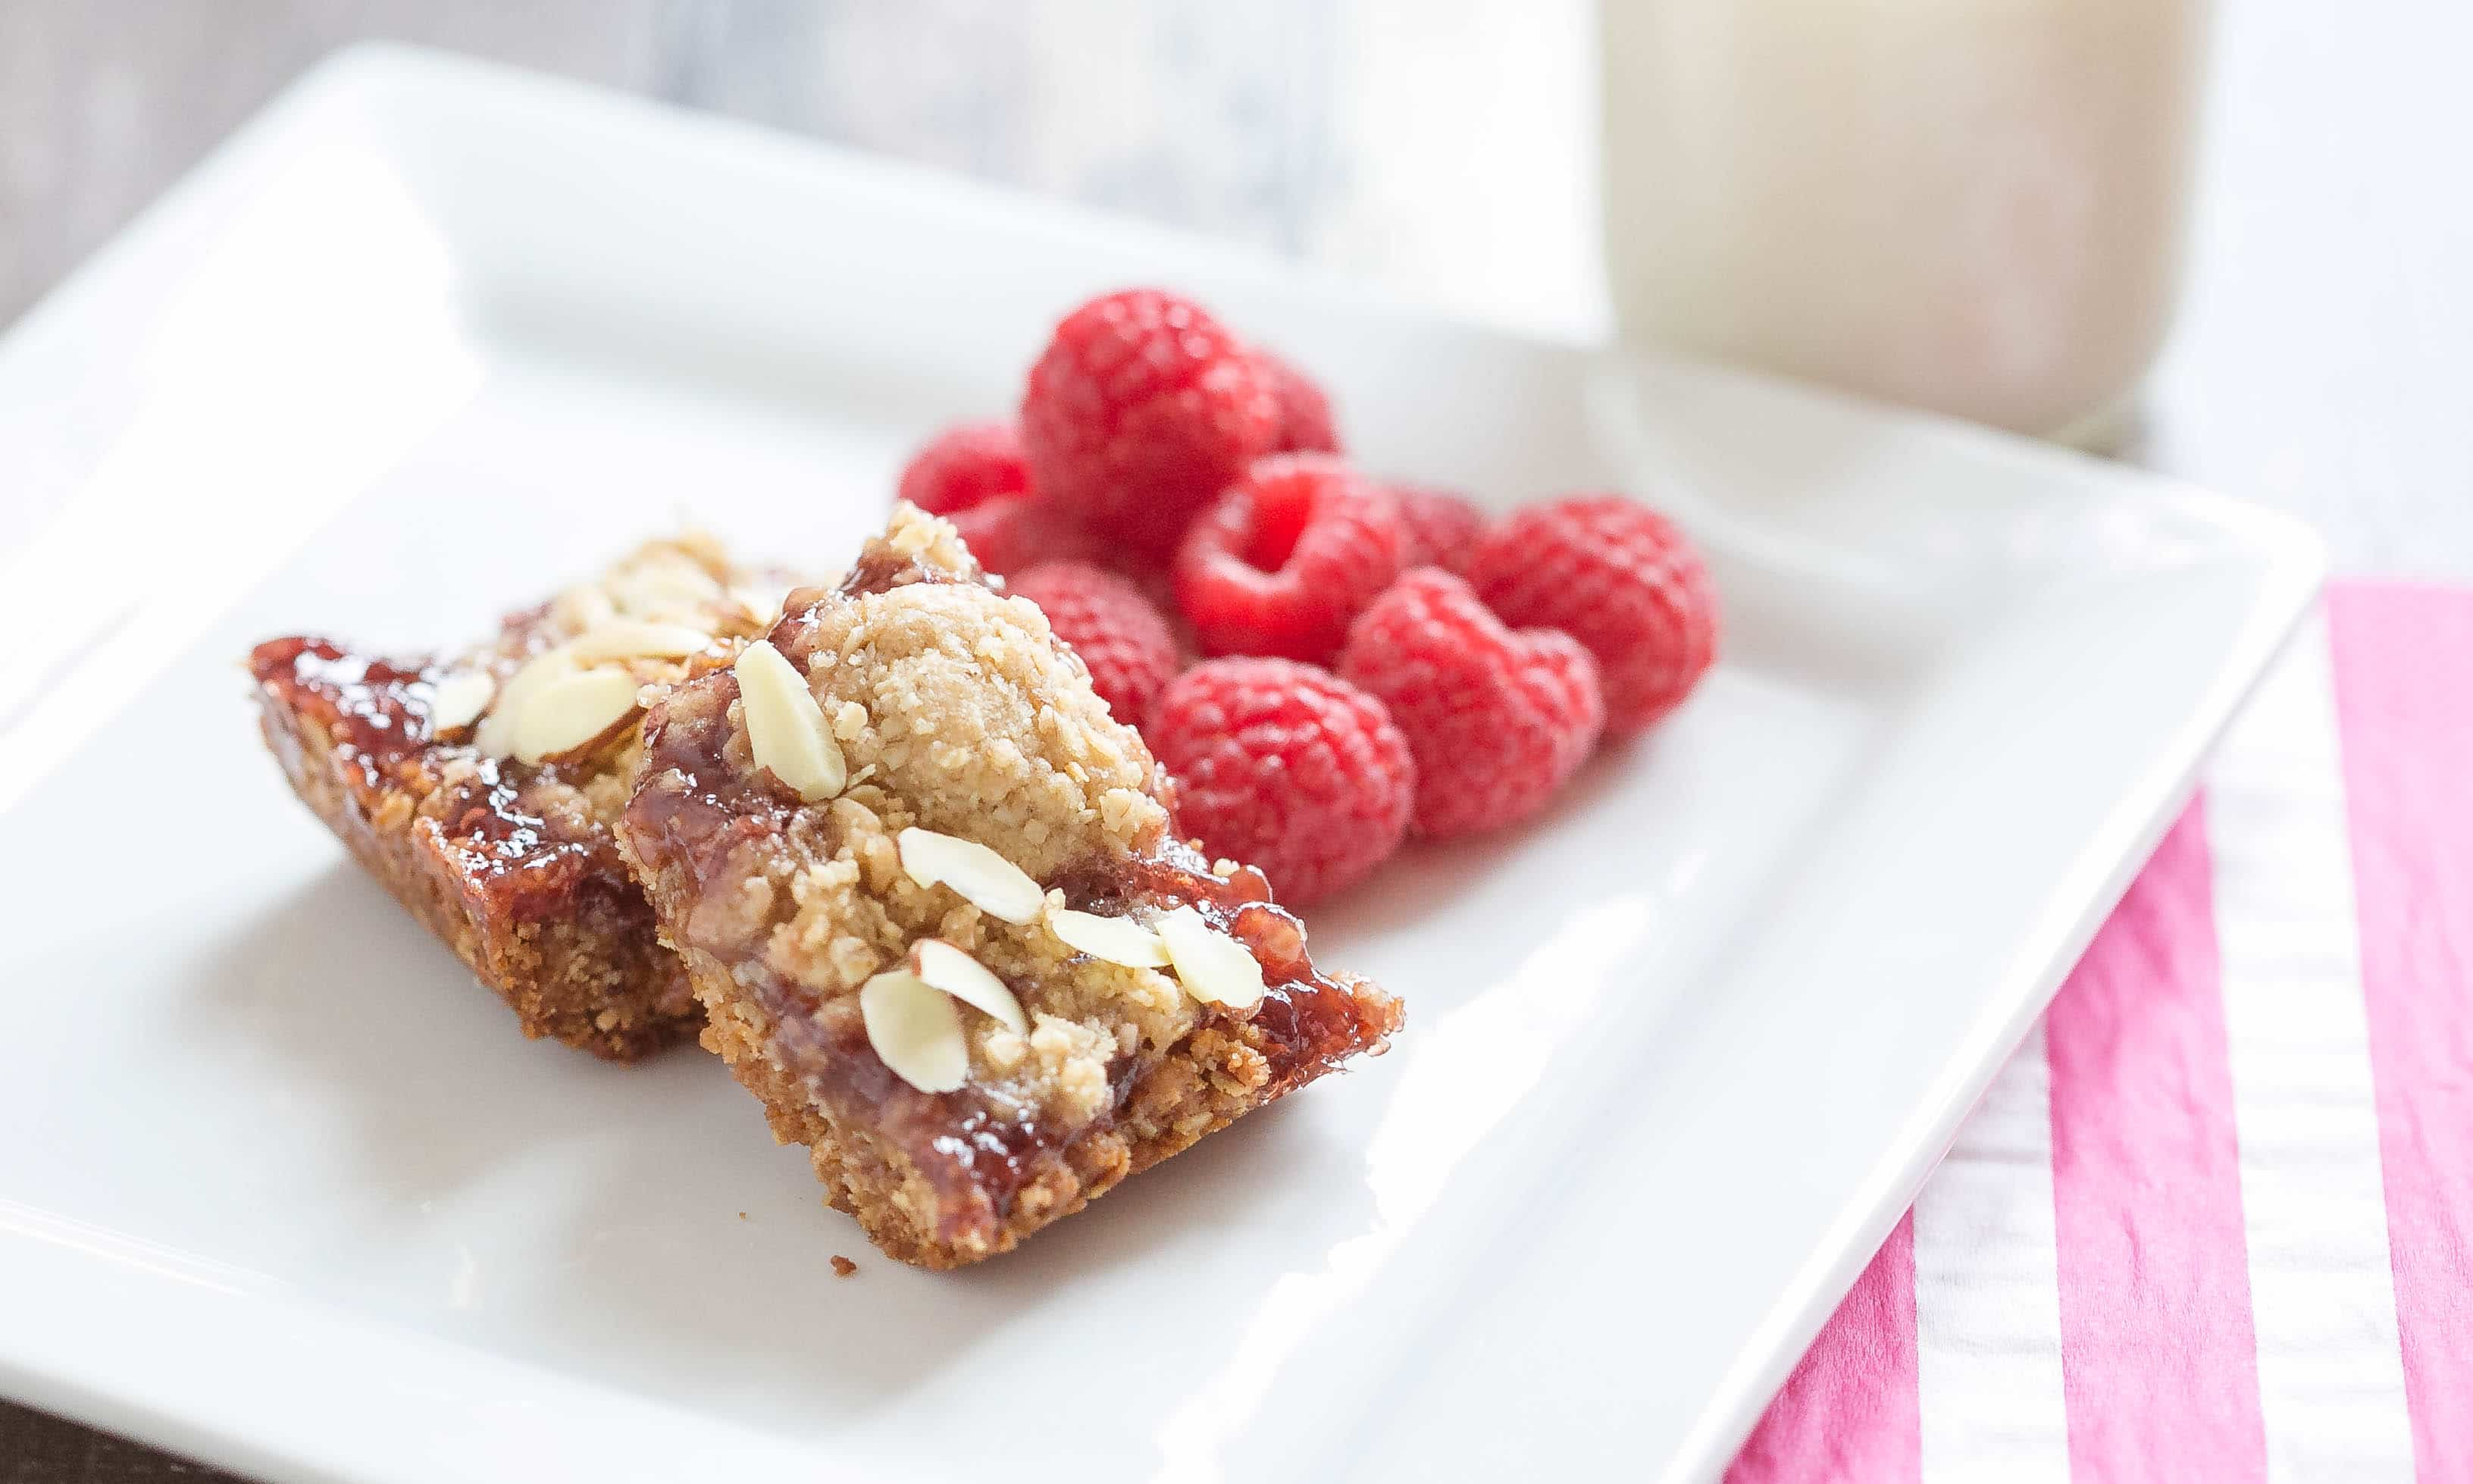 Cut into bars and serve with fresh raspberries.